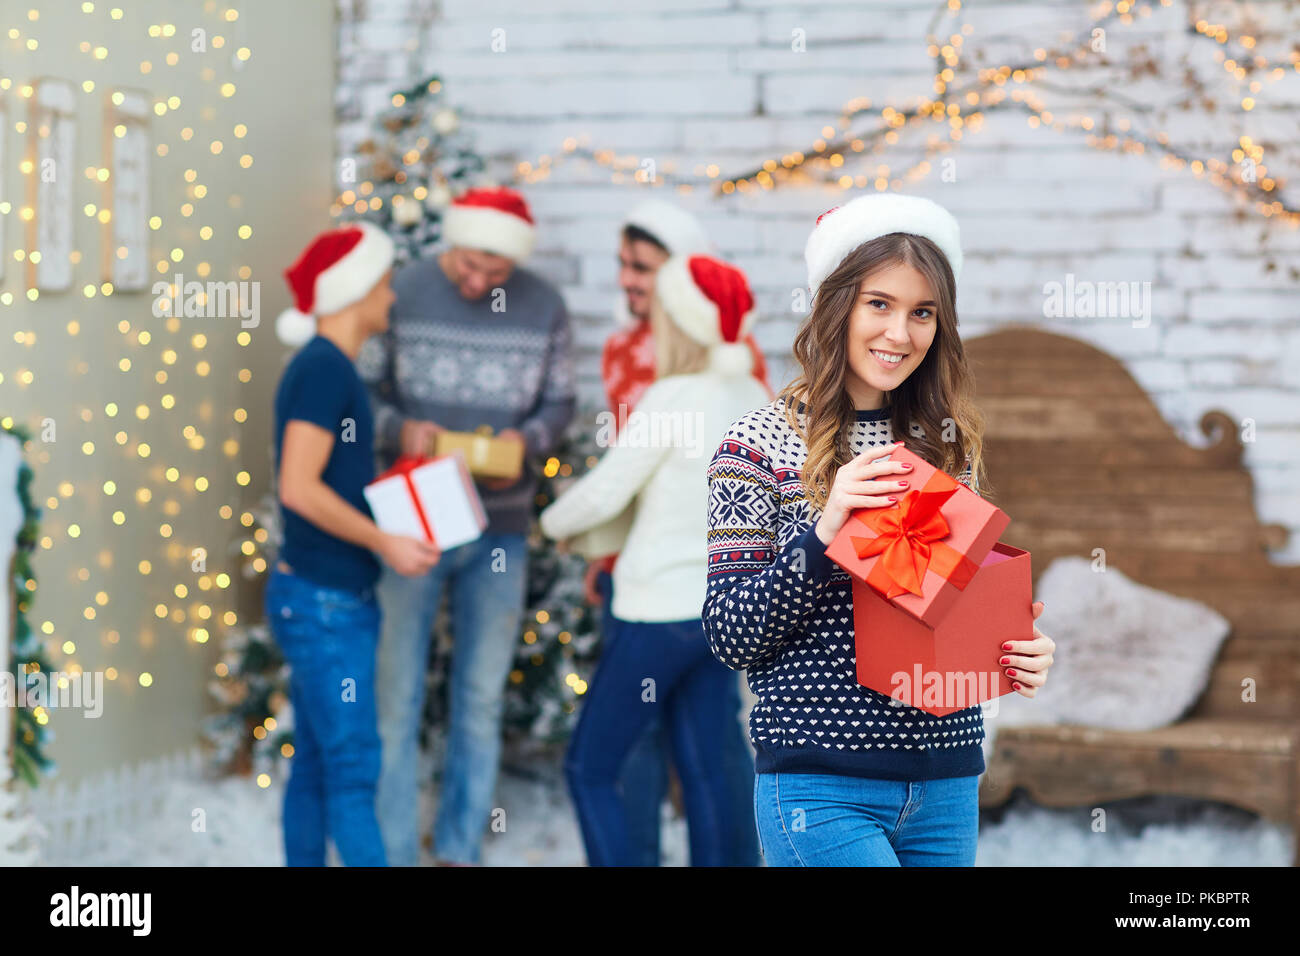 a group of friends with gifts at a christmas party